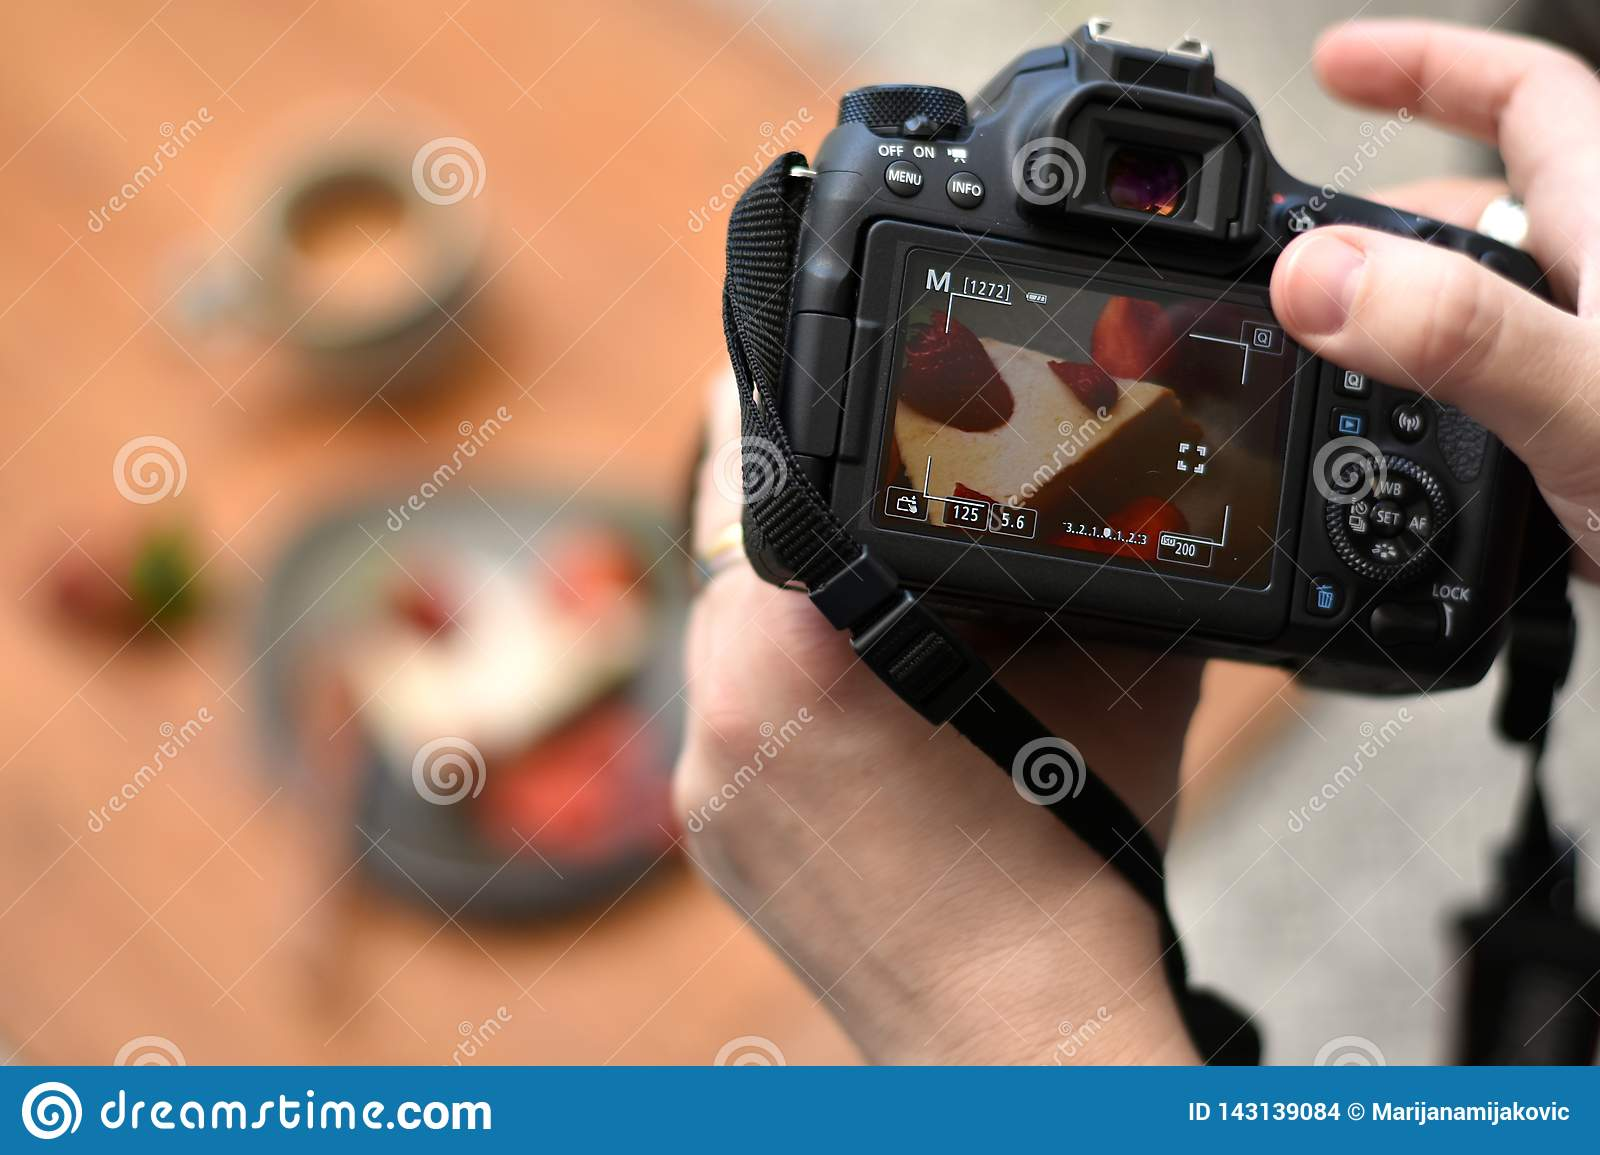 Hands of photographer holding dslr camera taking a photo